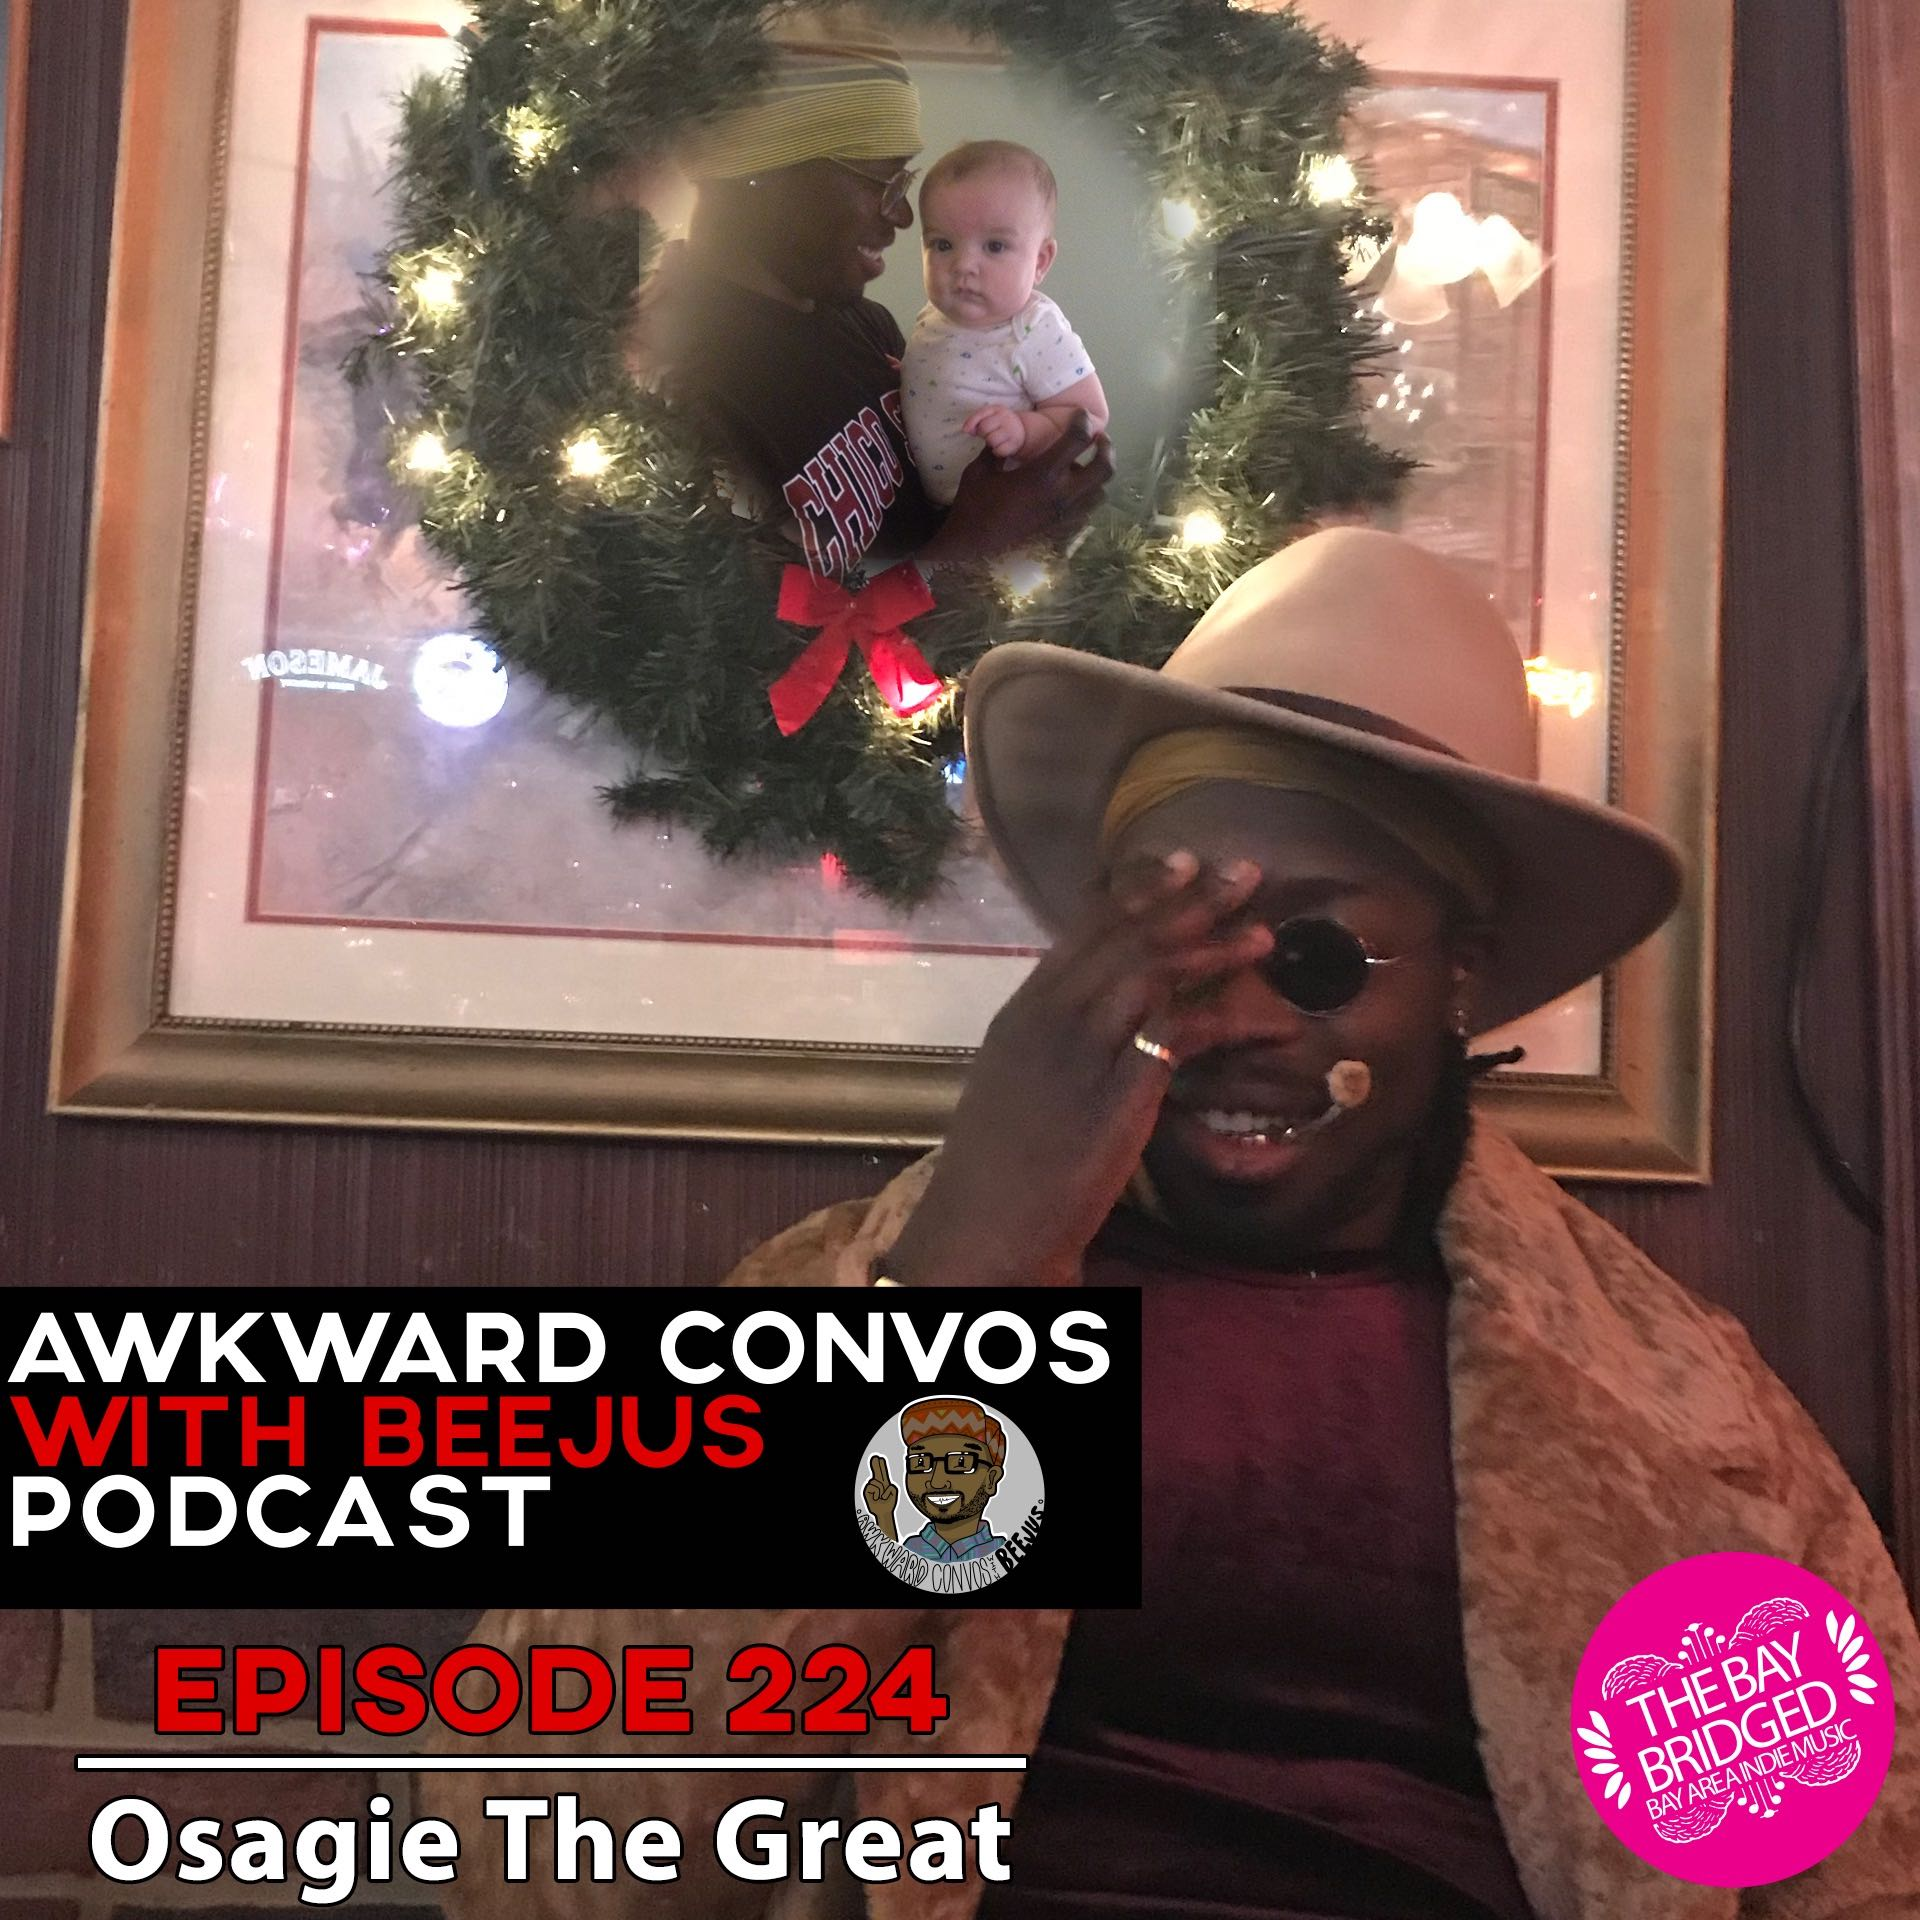 Awkward Convos with Beejus: Osagie the Great